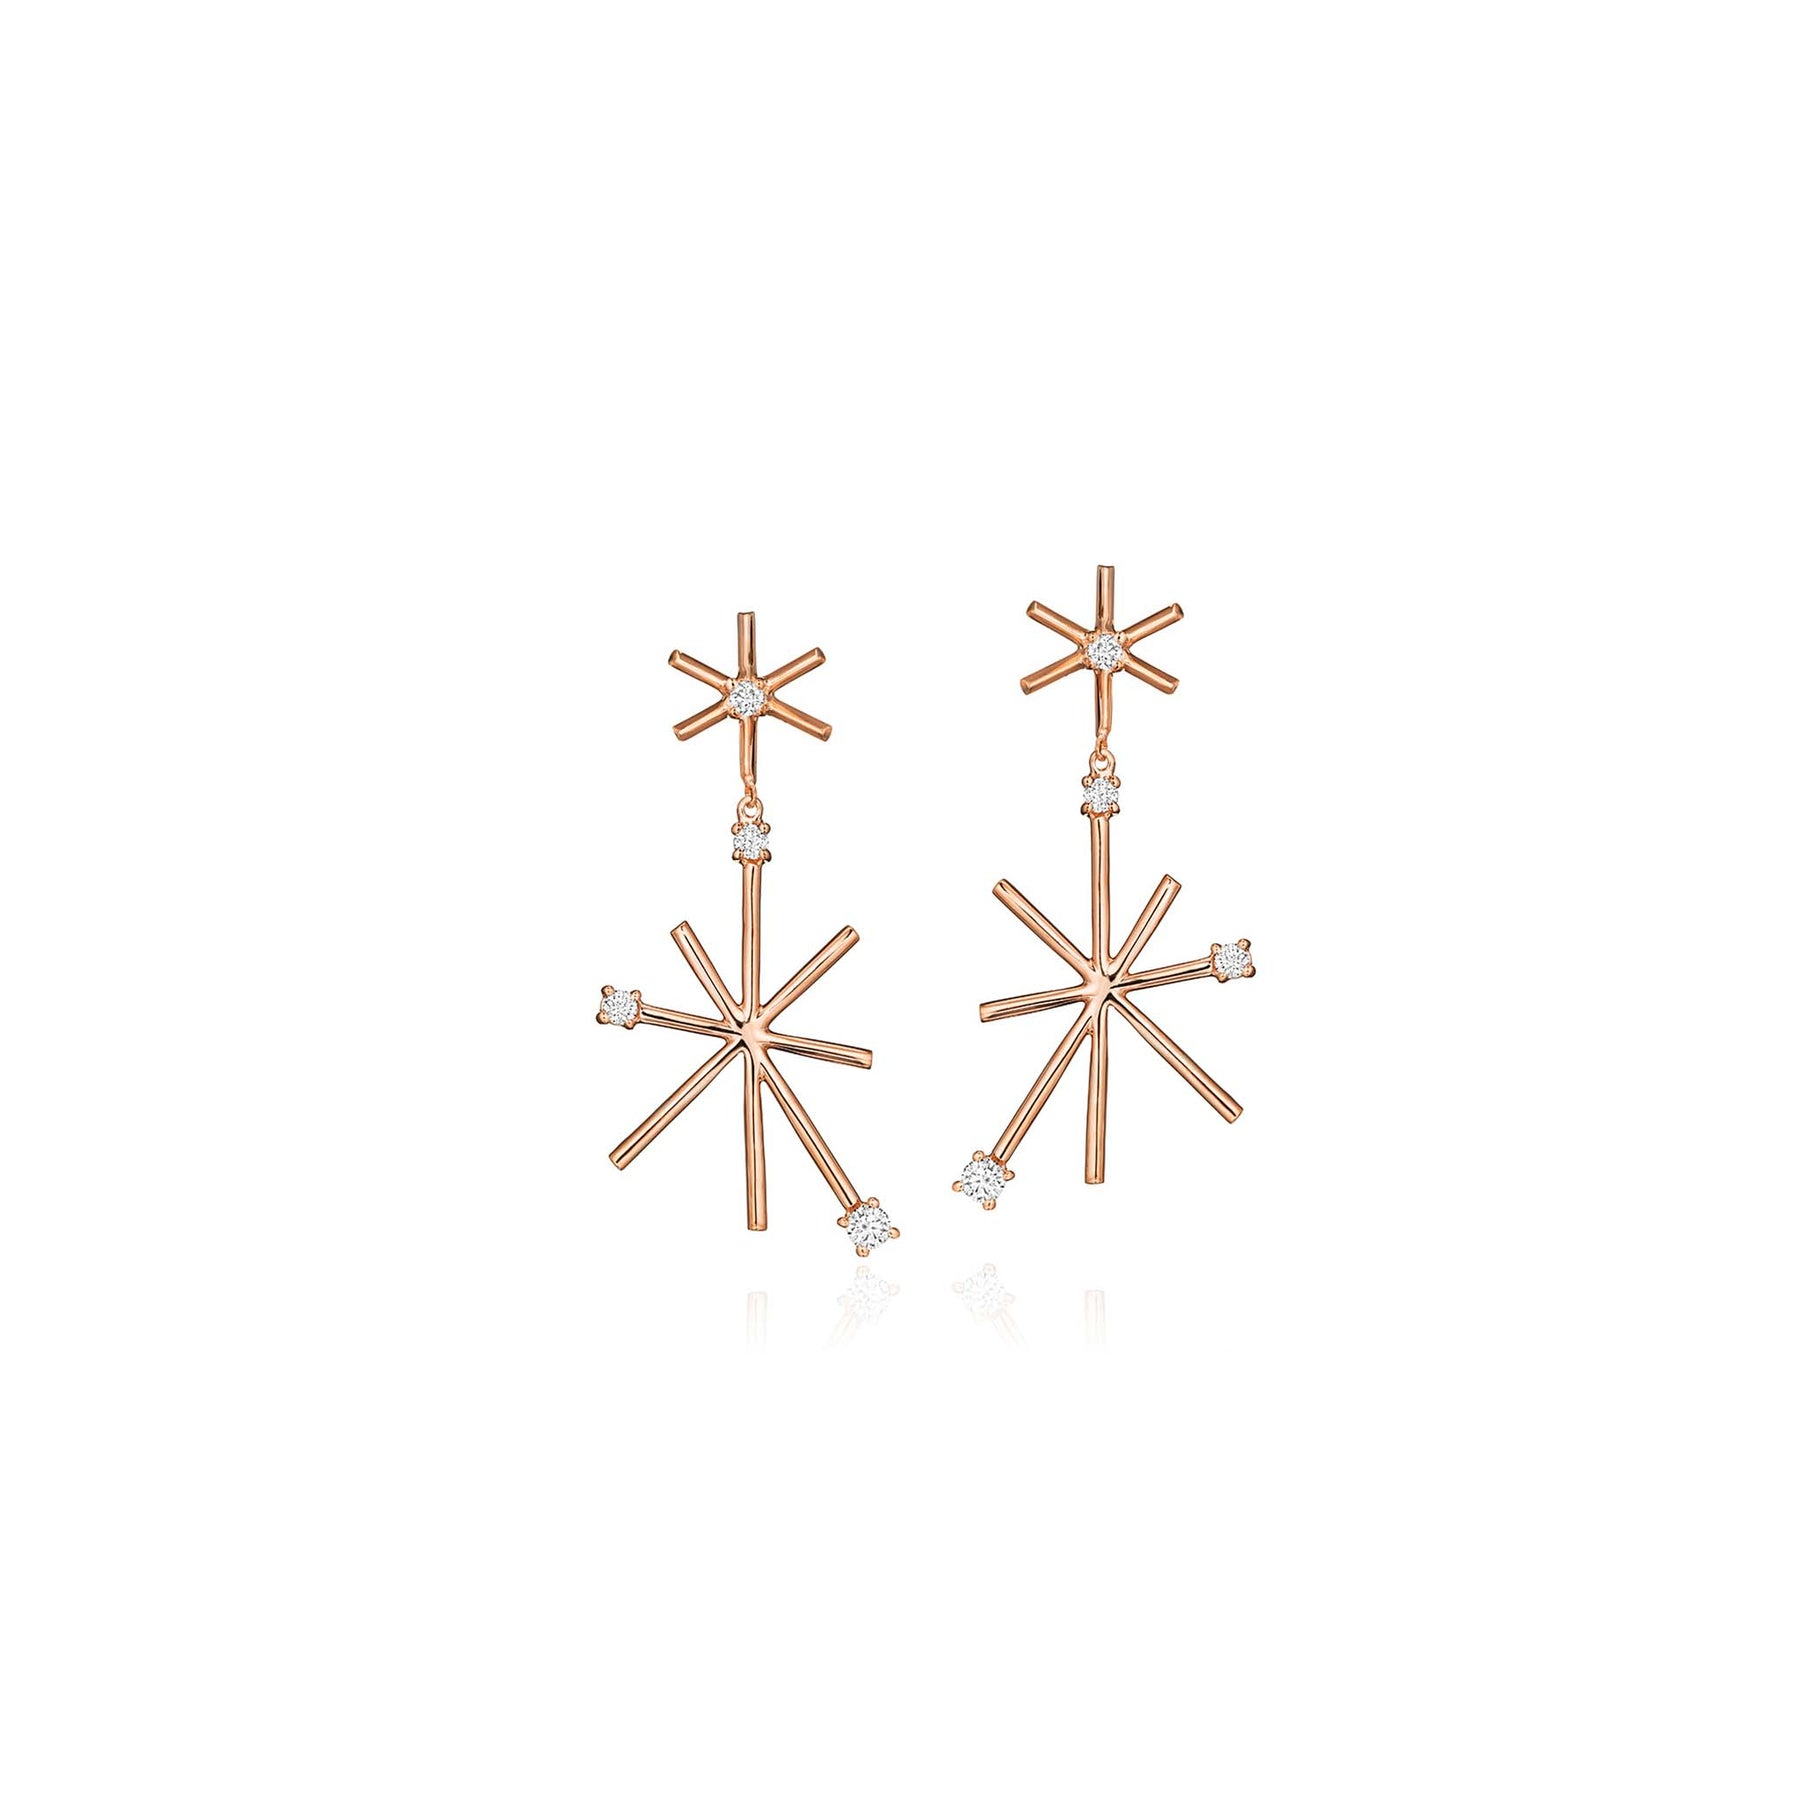 Mimi-So-Piece-Star-Drop-Earrings_18k Rose Gold